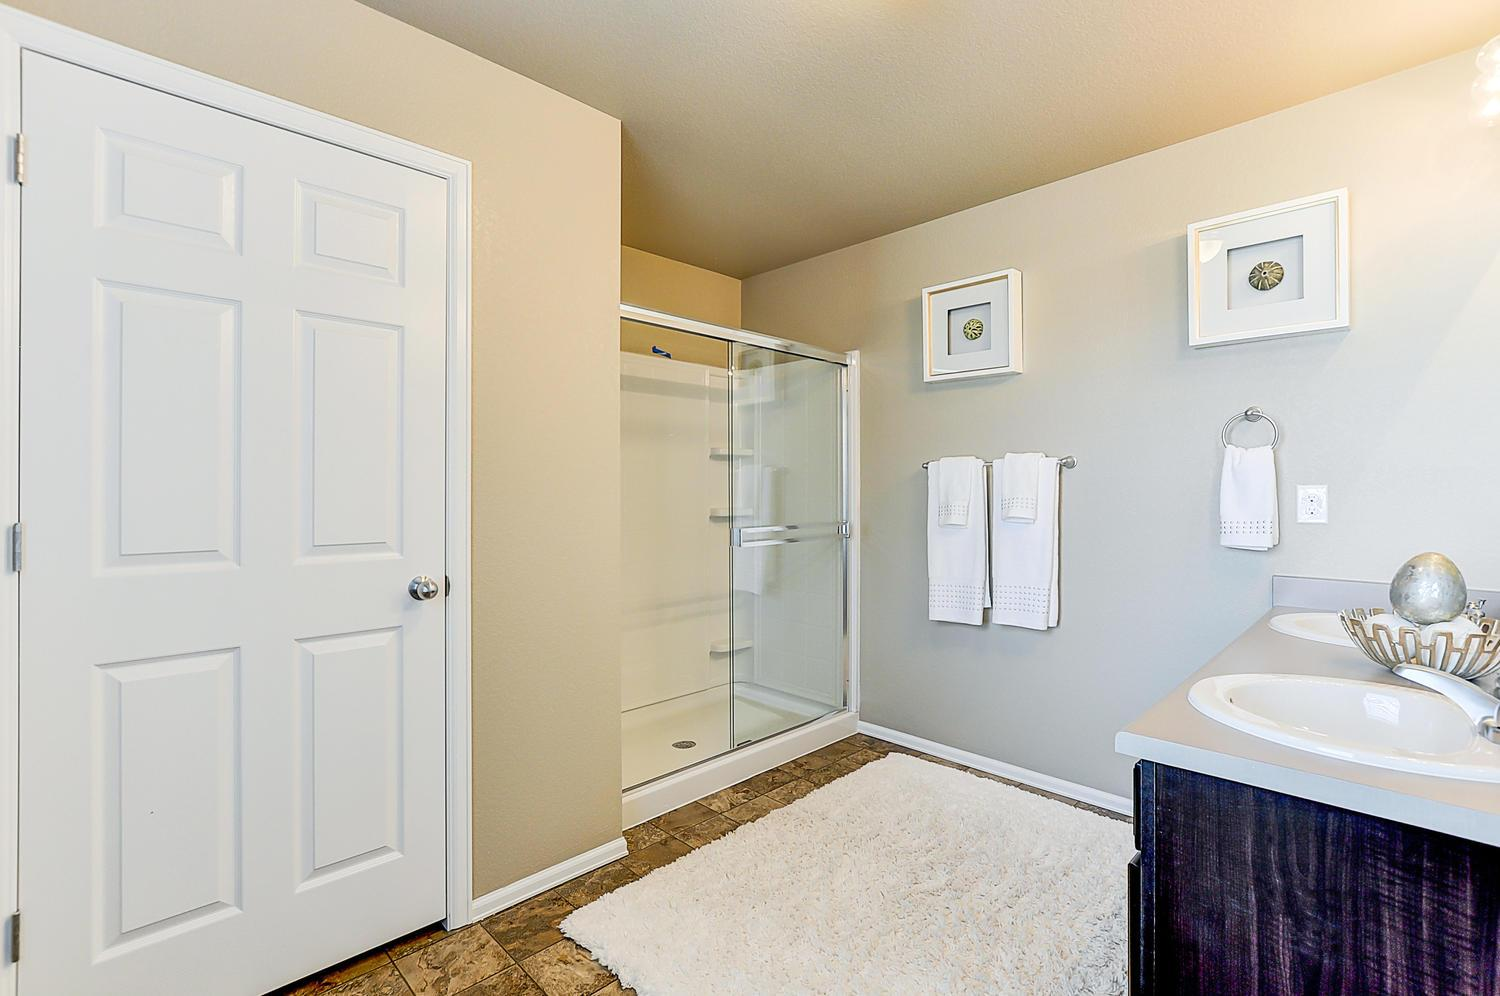 Bathroom featured in the FLORA By D.R. Horton in Fort Collins-Loveland, CO